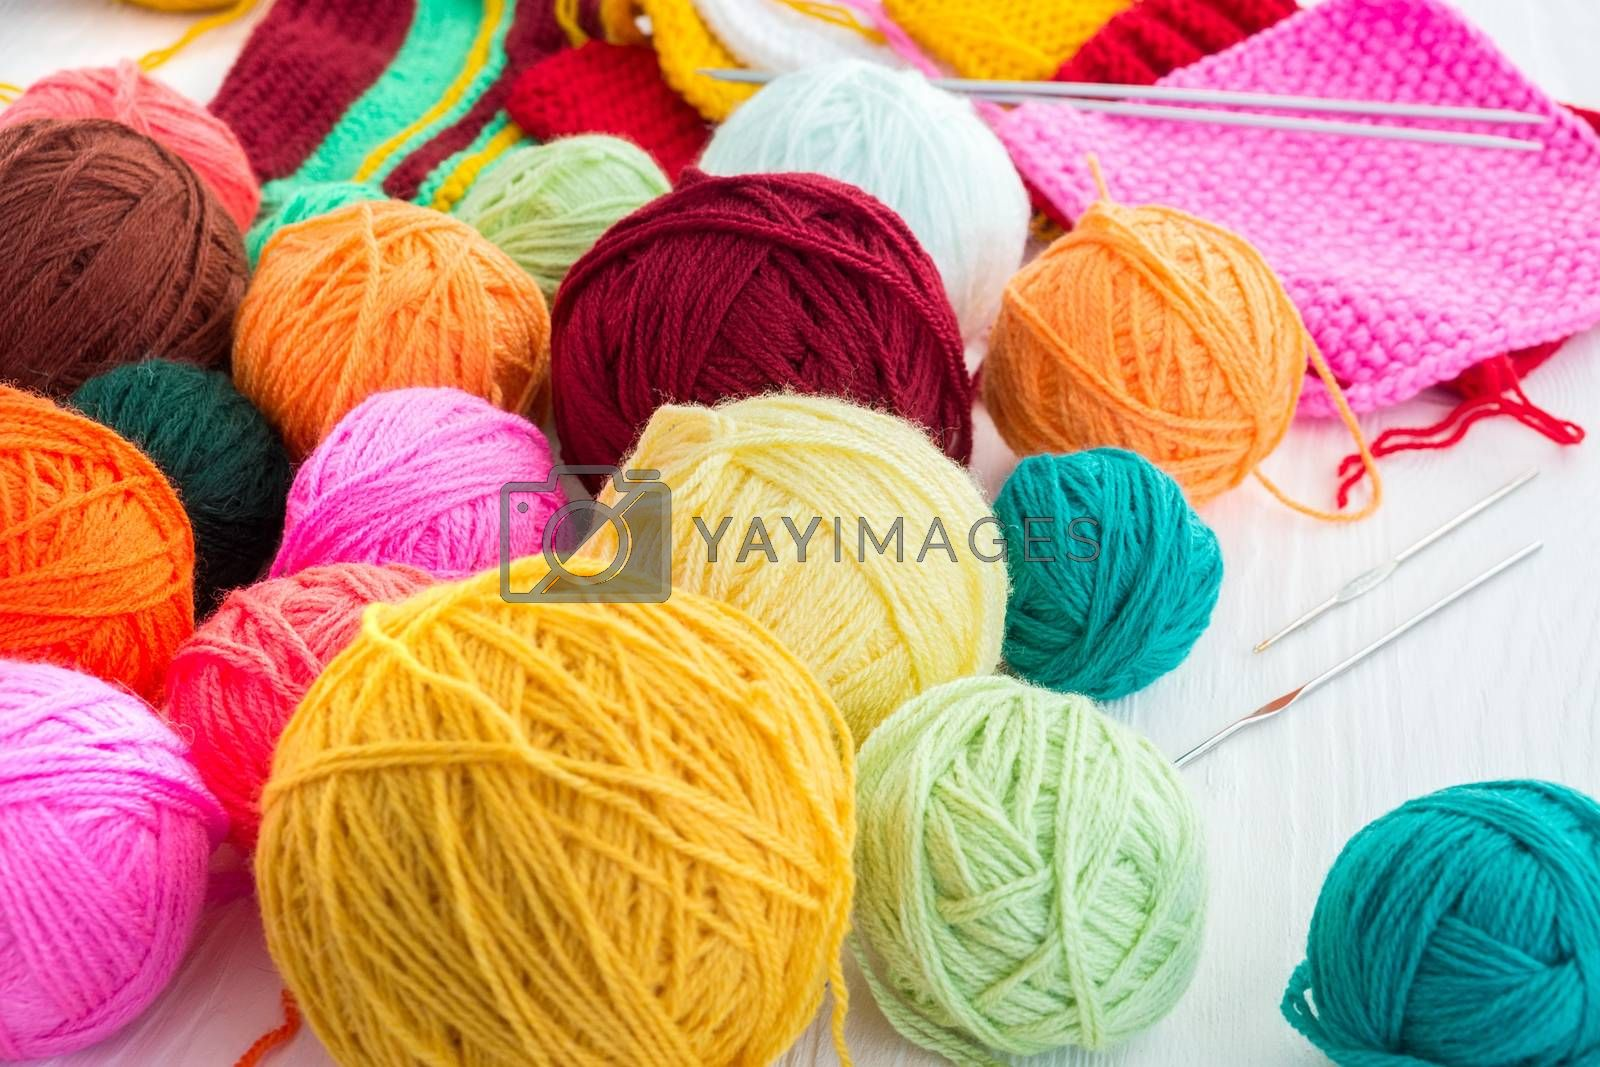 The photo shows the knitting needles with a ball